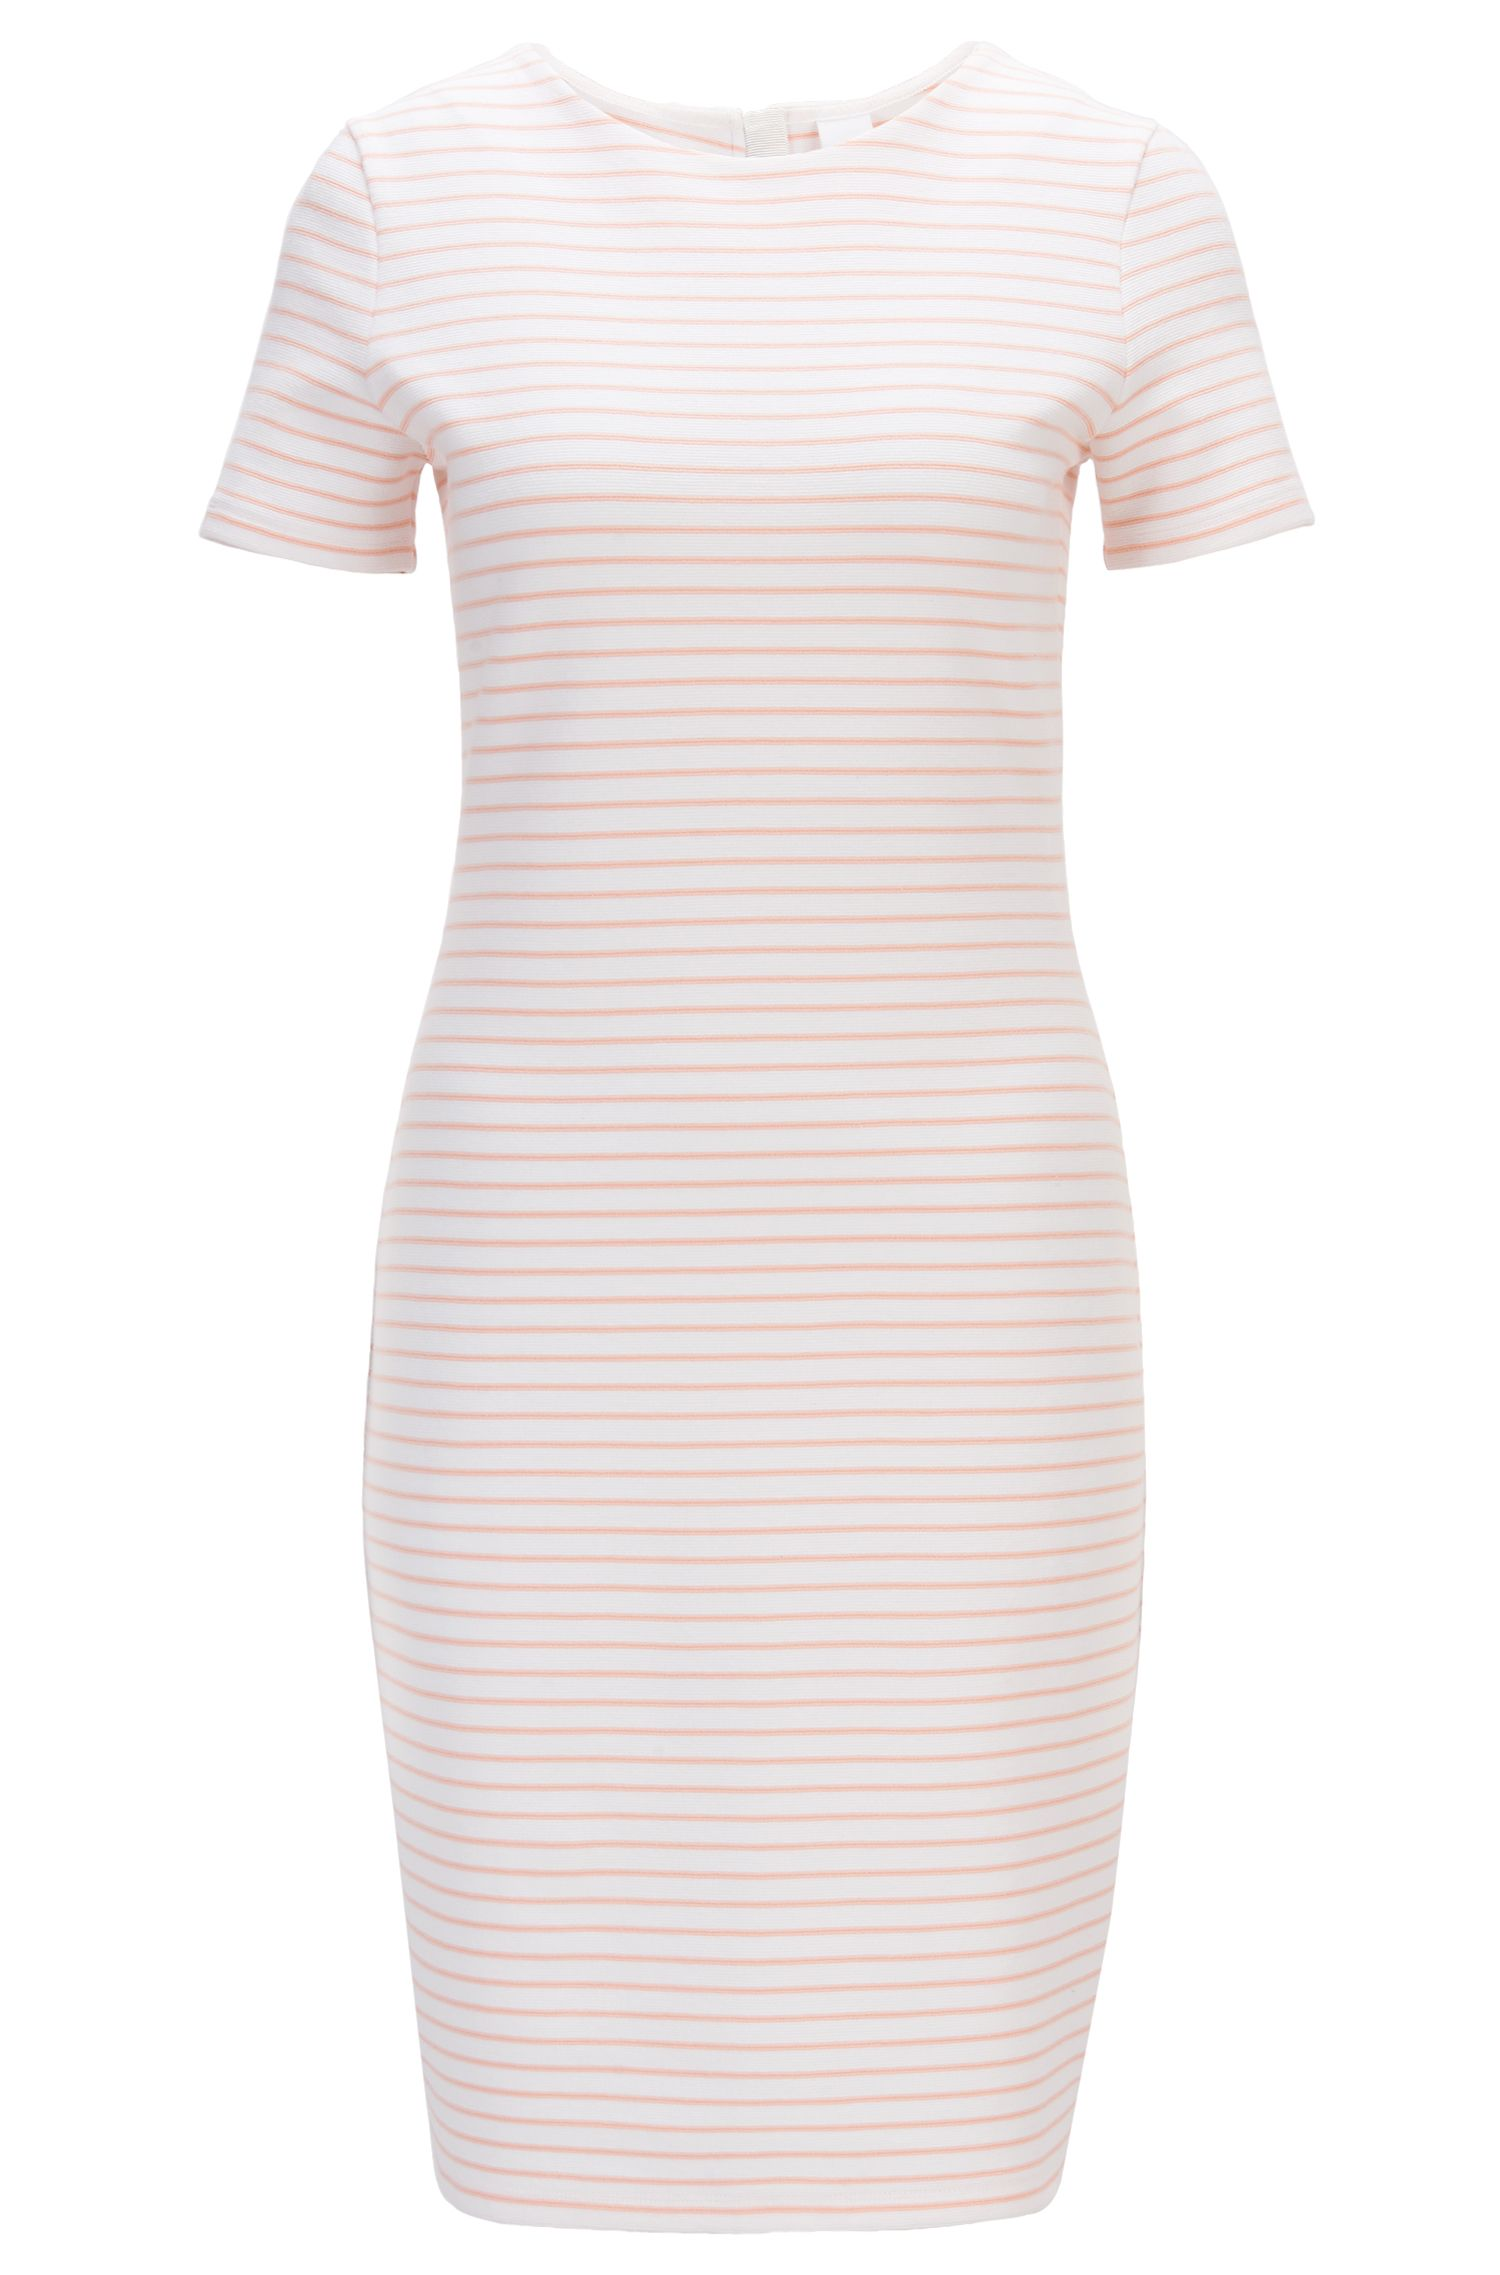 Short-sleeved striped dress in a cotton blend